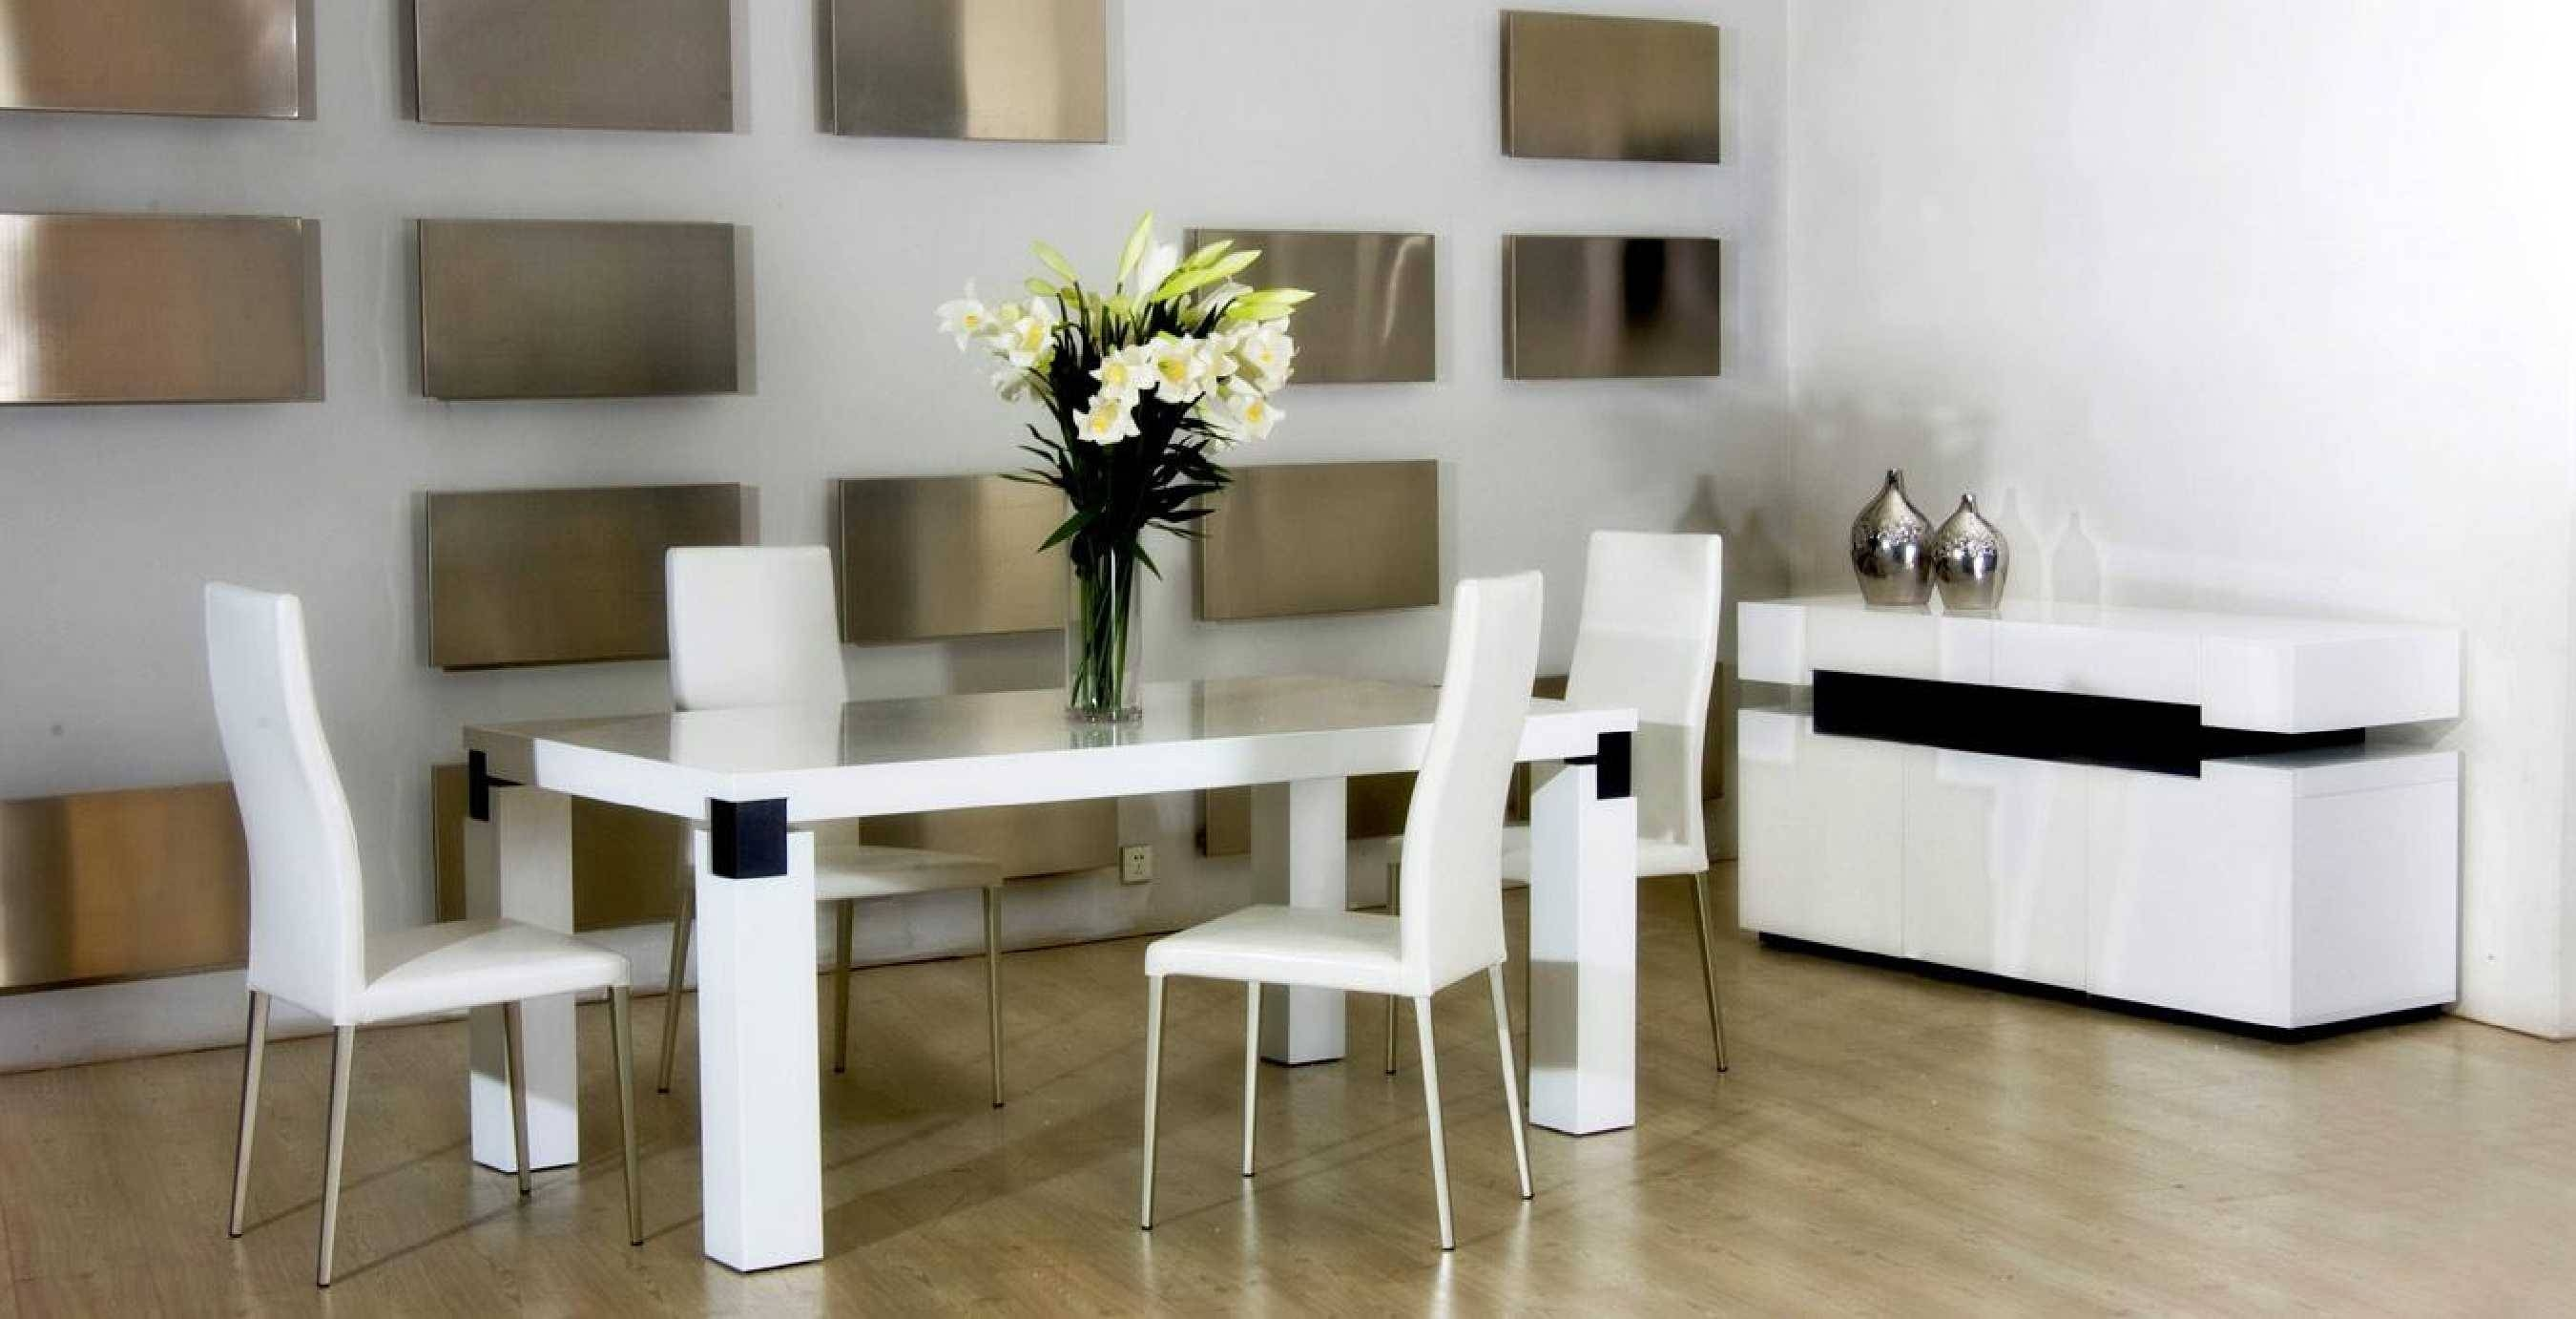 Alliancemv – Design Chairs And Dining Room Table Inside Newest Dining Room Sets With Sideboards (#1 of 15)